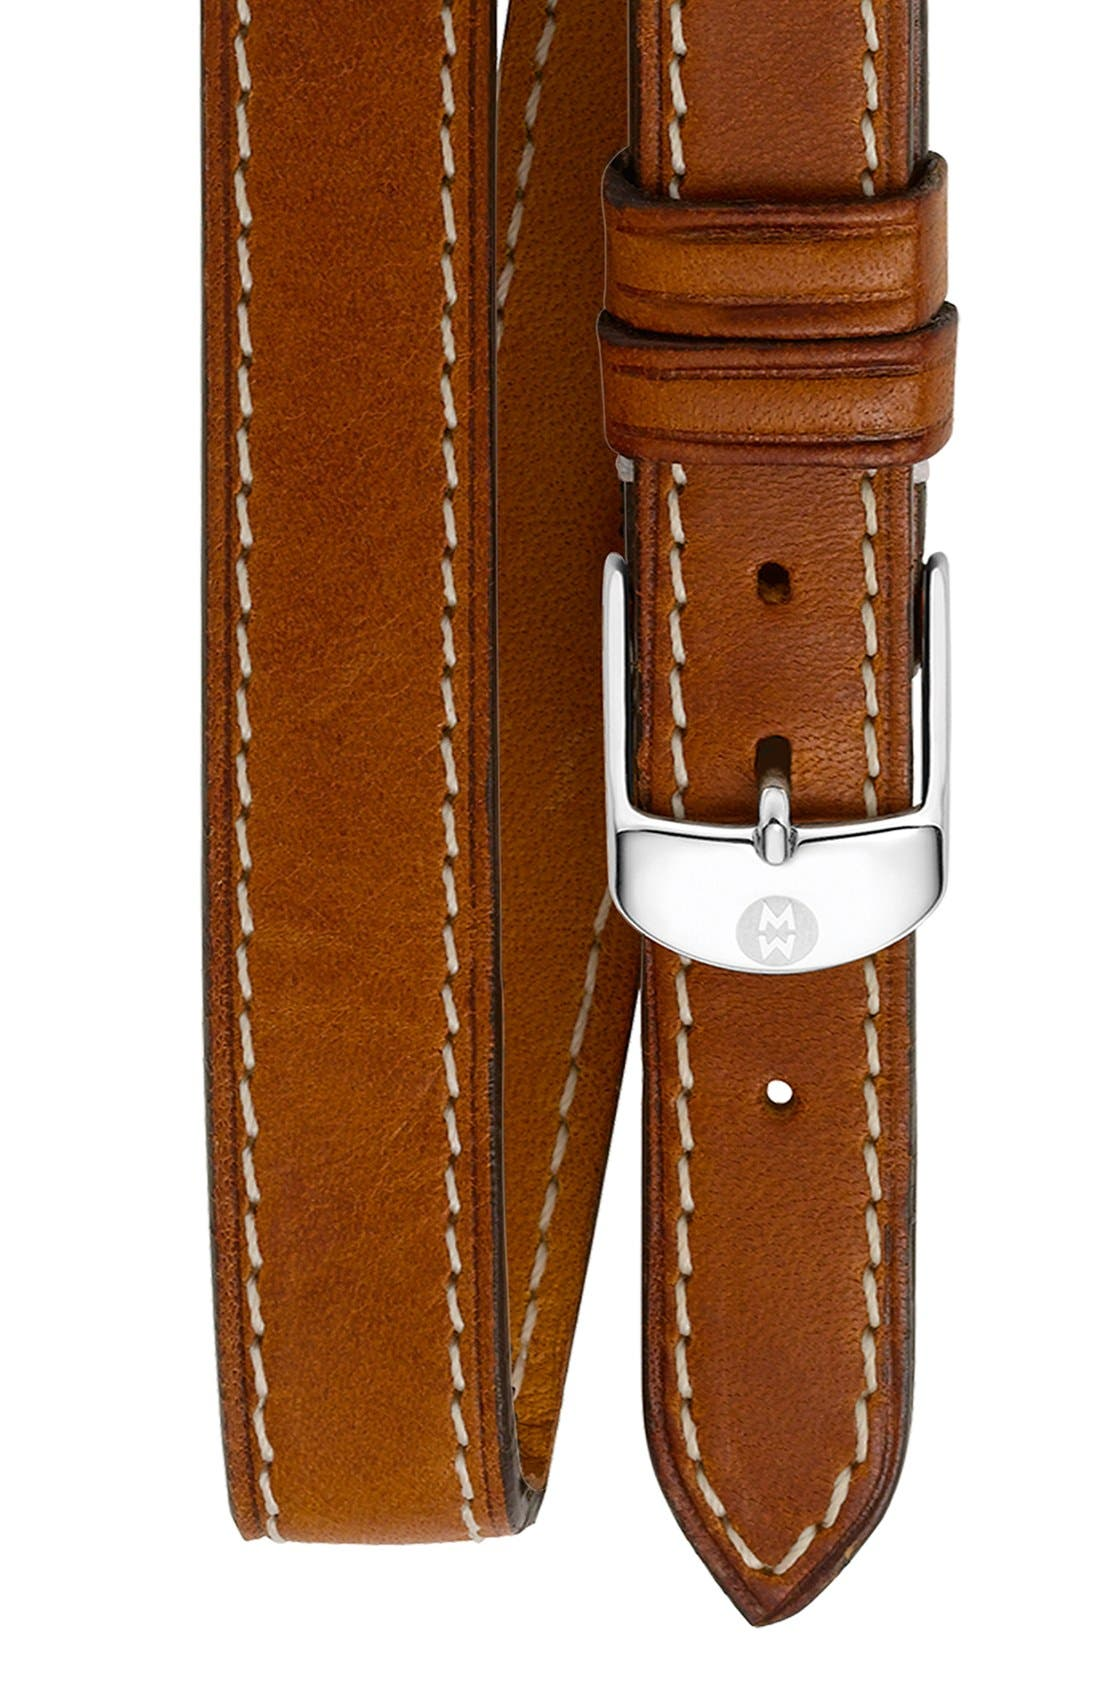 16mm Leather Double Wrap Watch Strap,                         Main,                         color, Light Brown